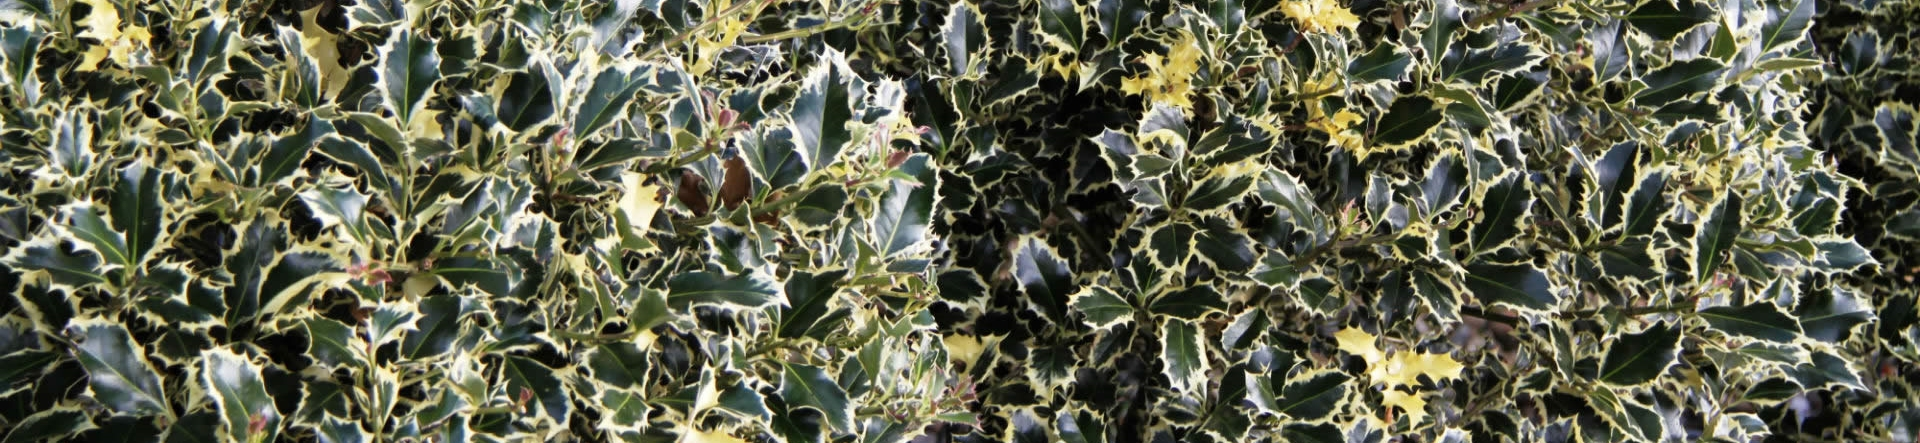 Crown Topiary care guide for Holly